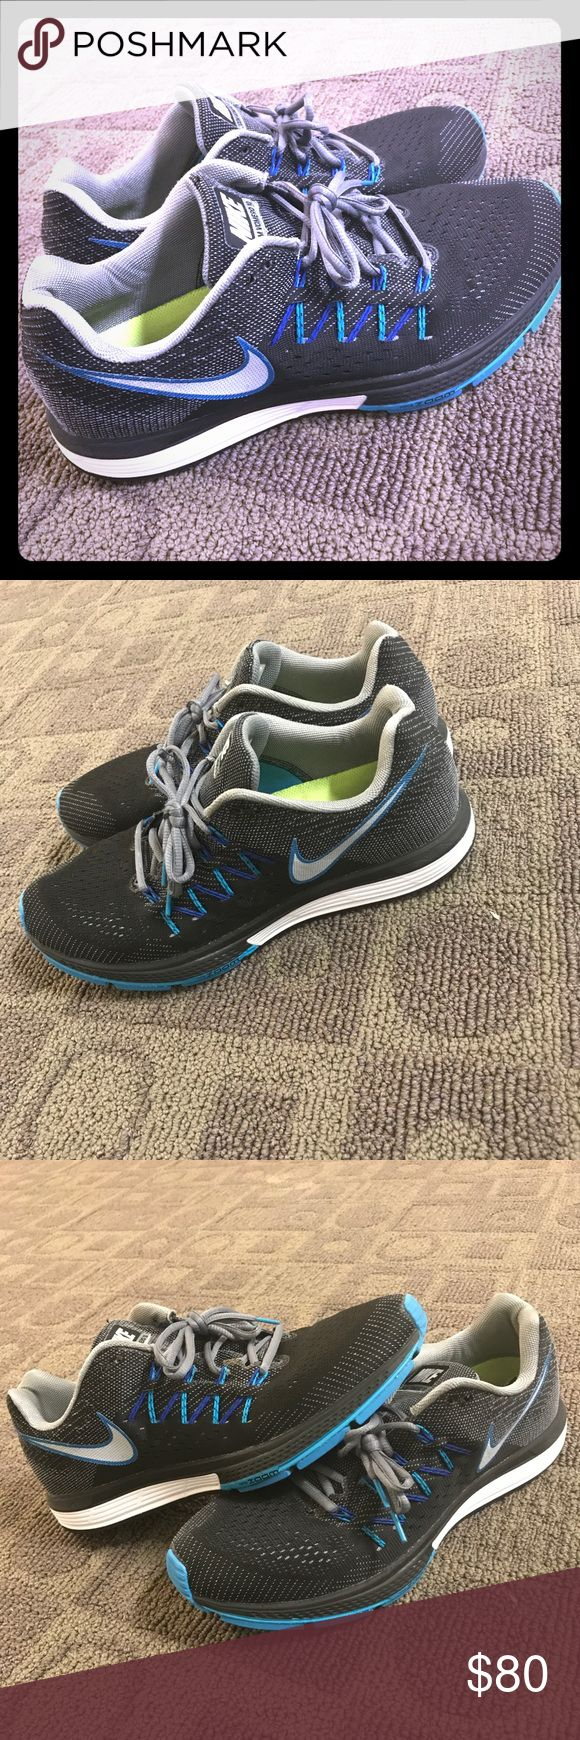 Black, blue, white, and grey Nike Vomero 10 Mint condition! Minimal wear. Nike Shoes Sneakers